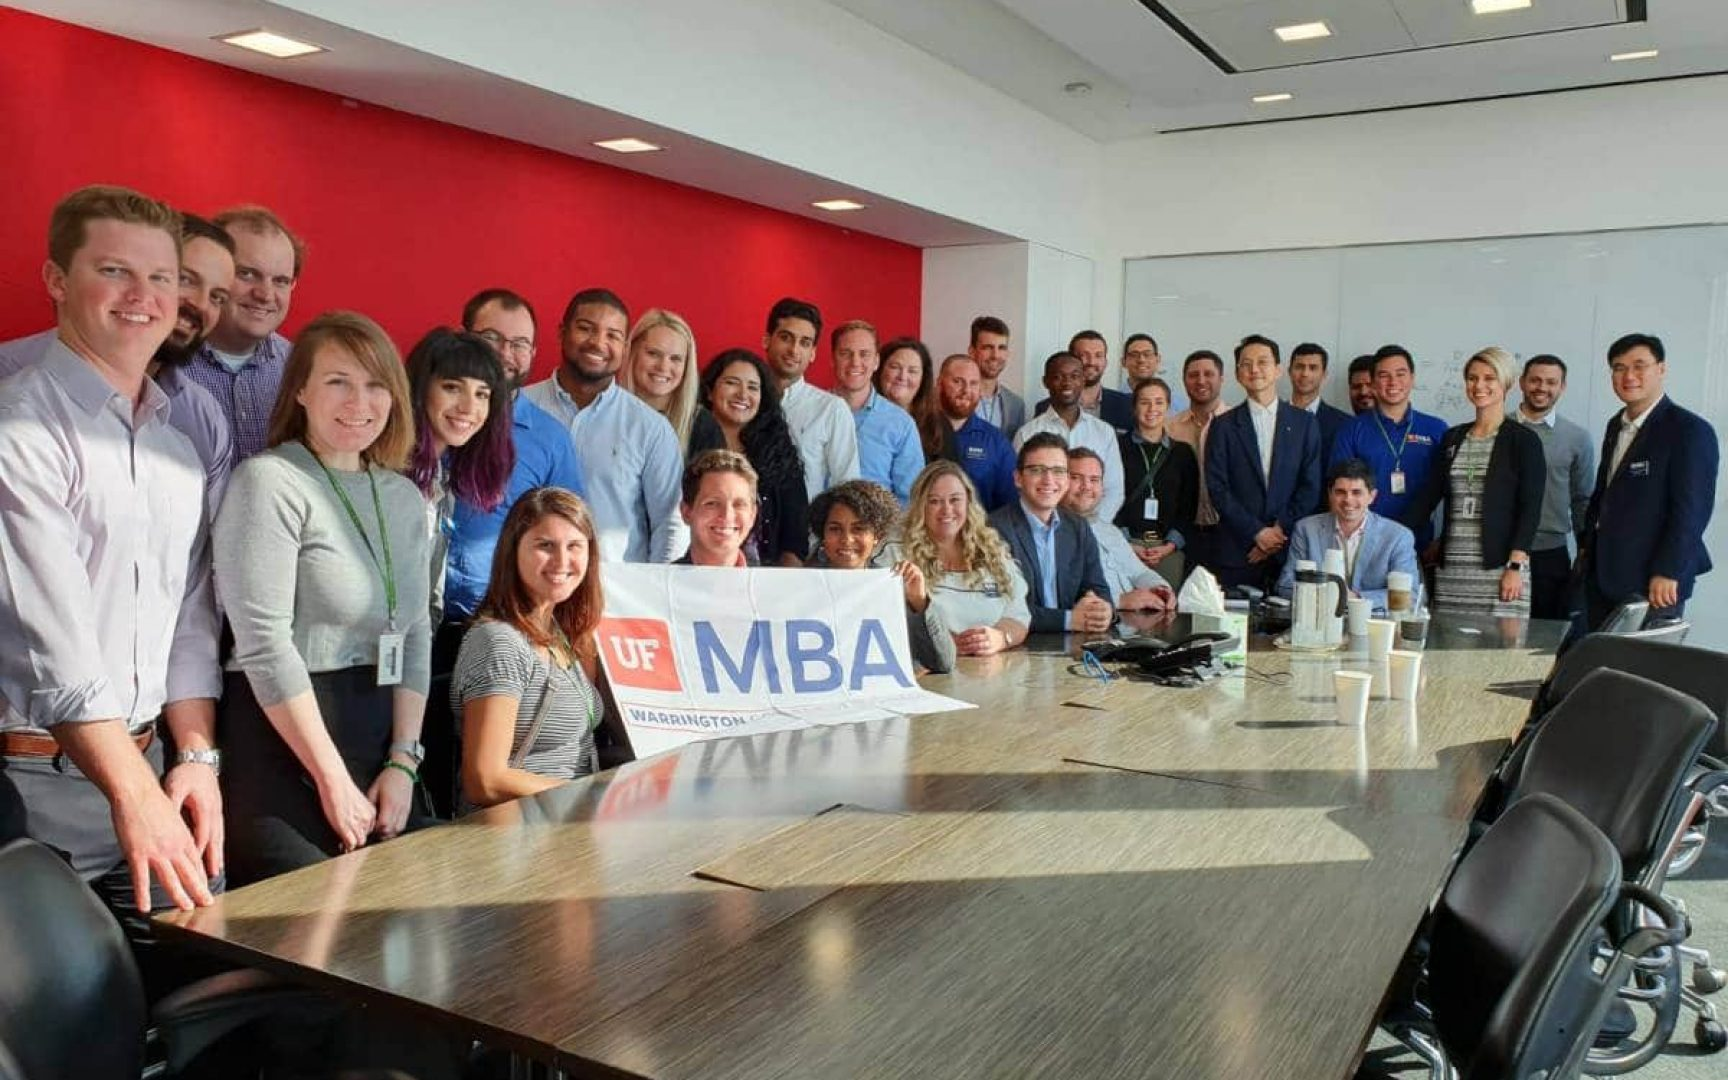 UF MBA students at a large conference table with a UF MBA banner